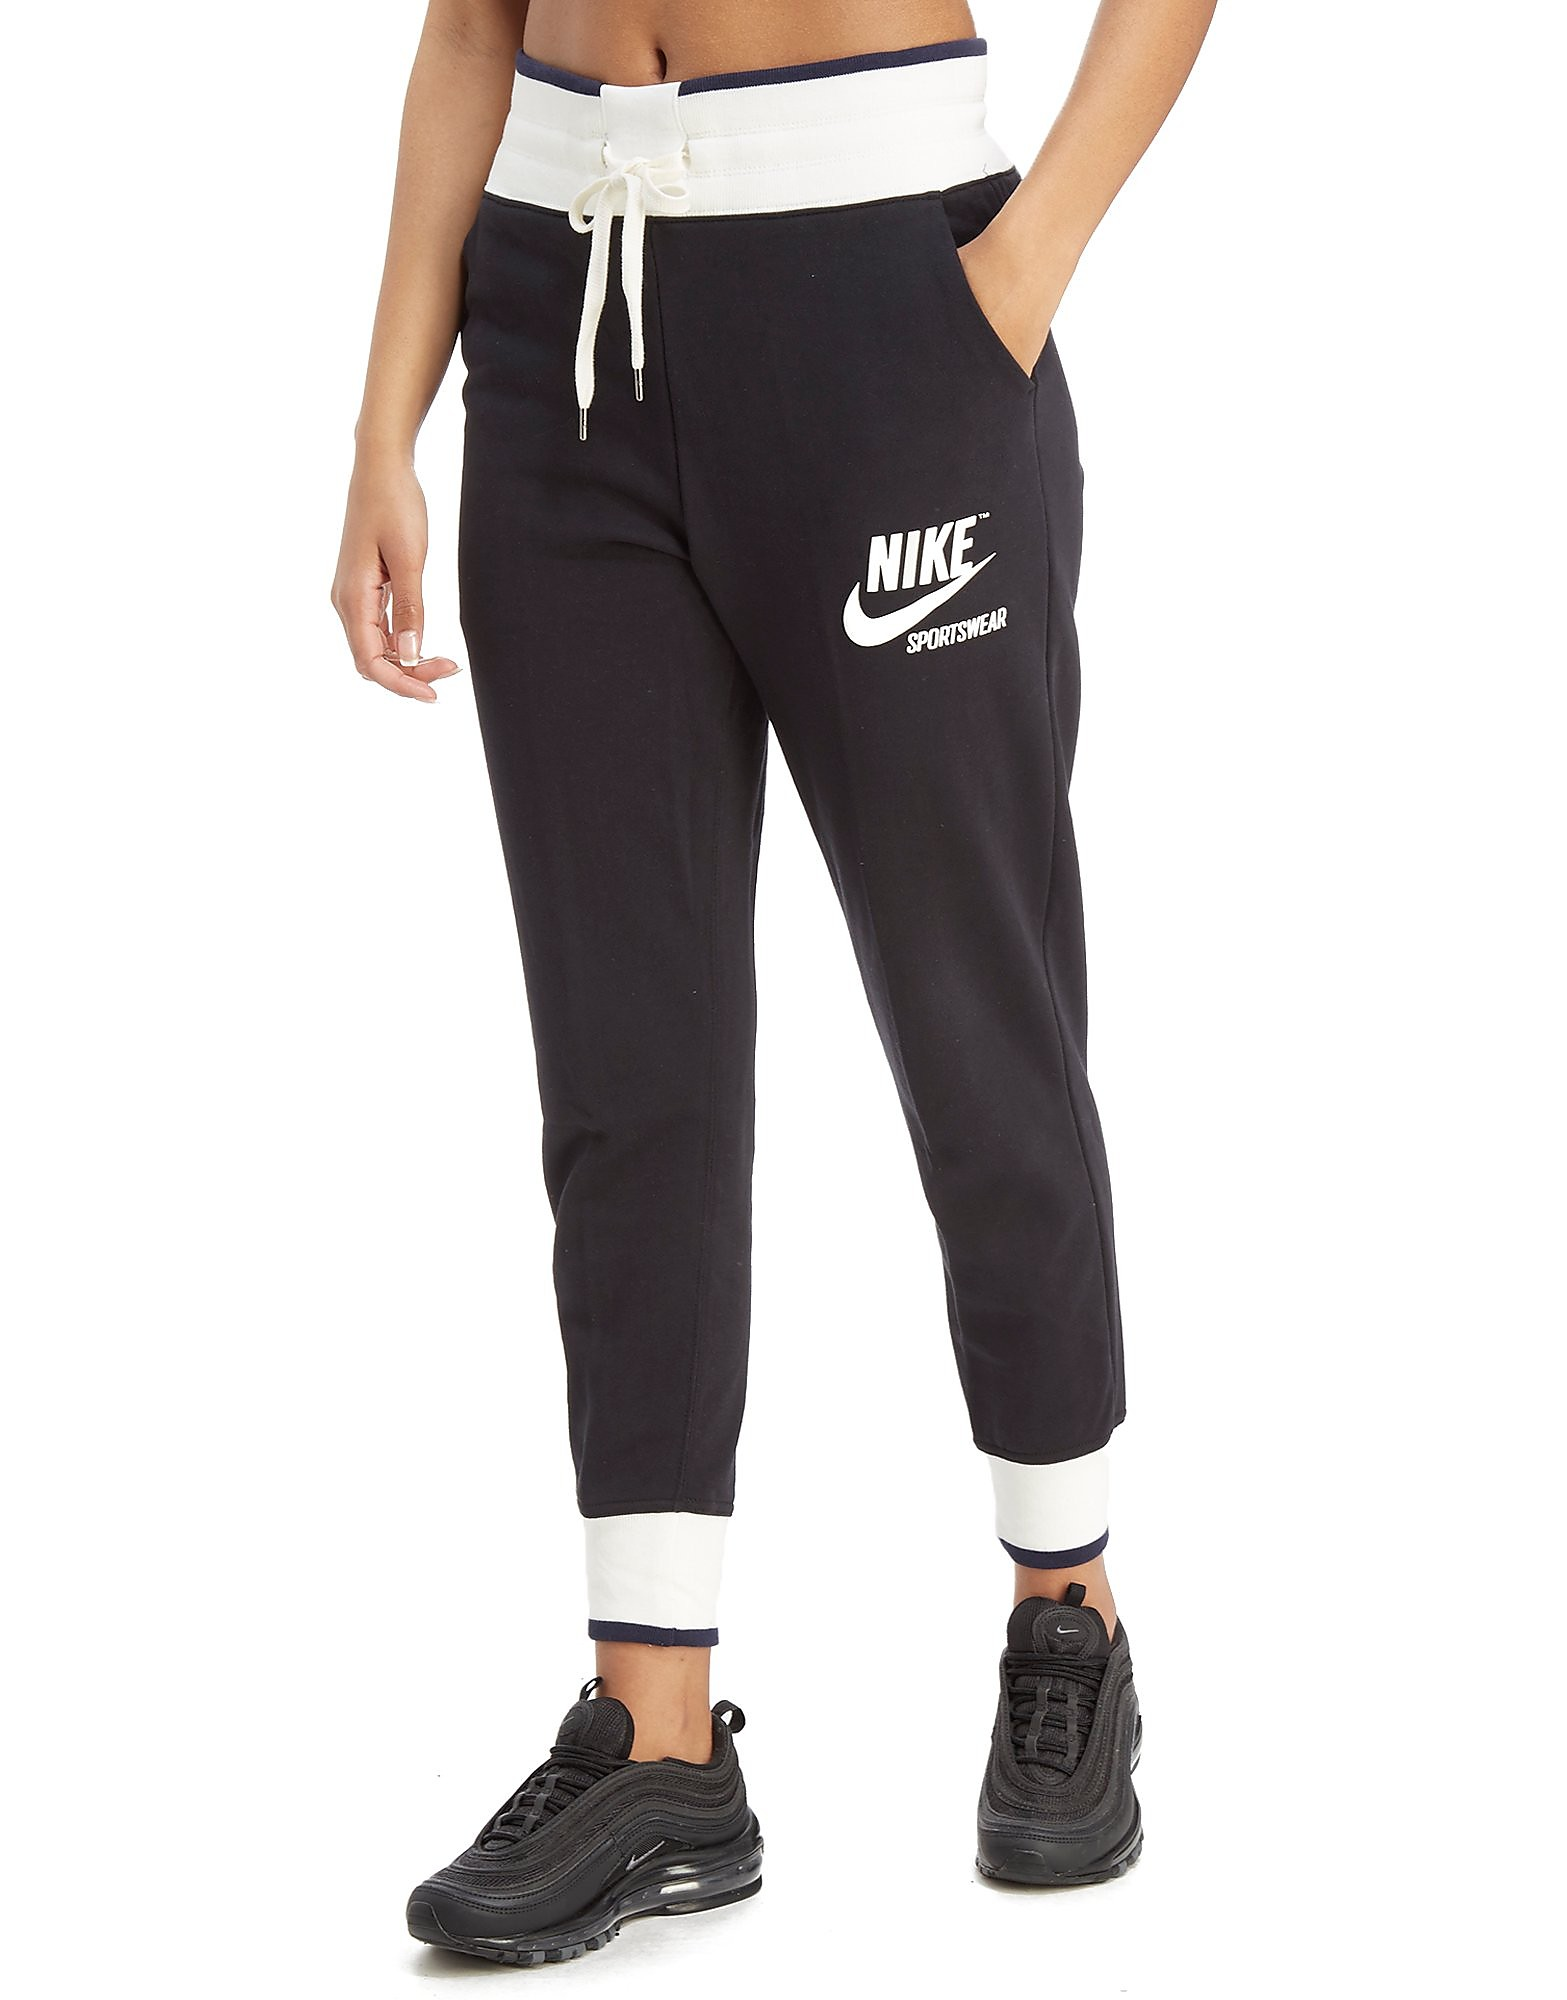 Nike Archive Fleece Pants